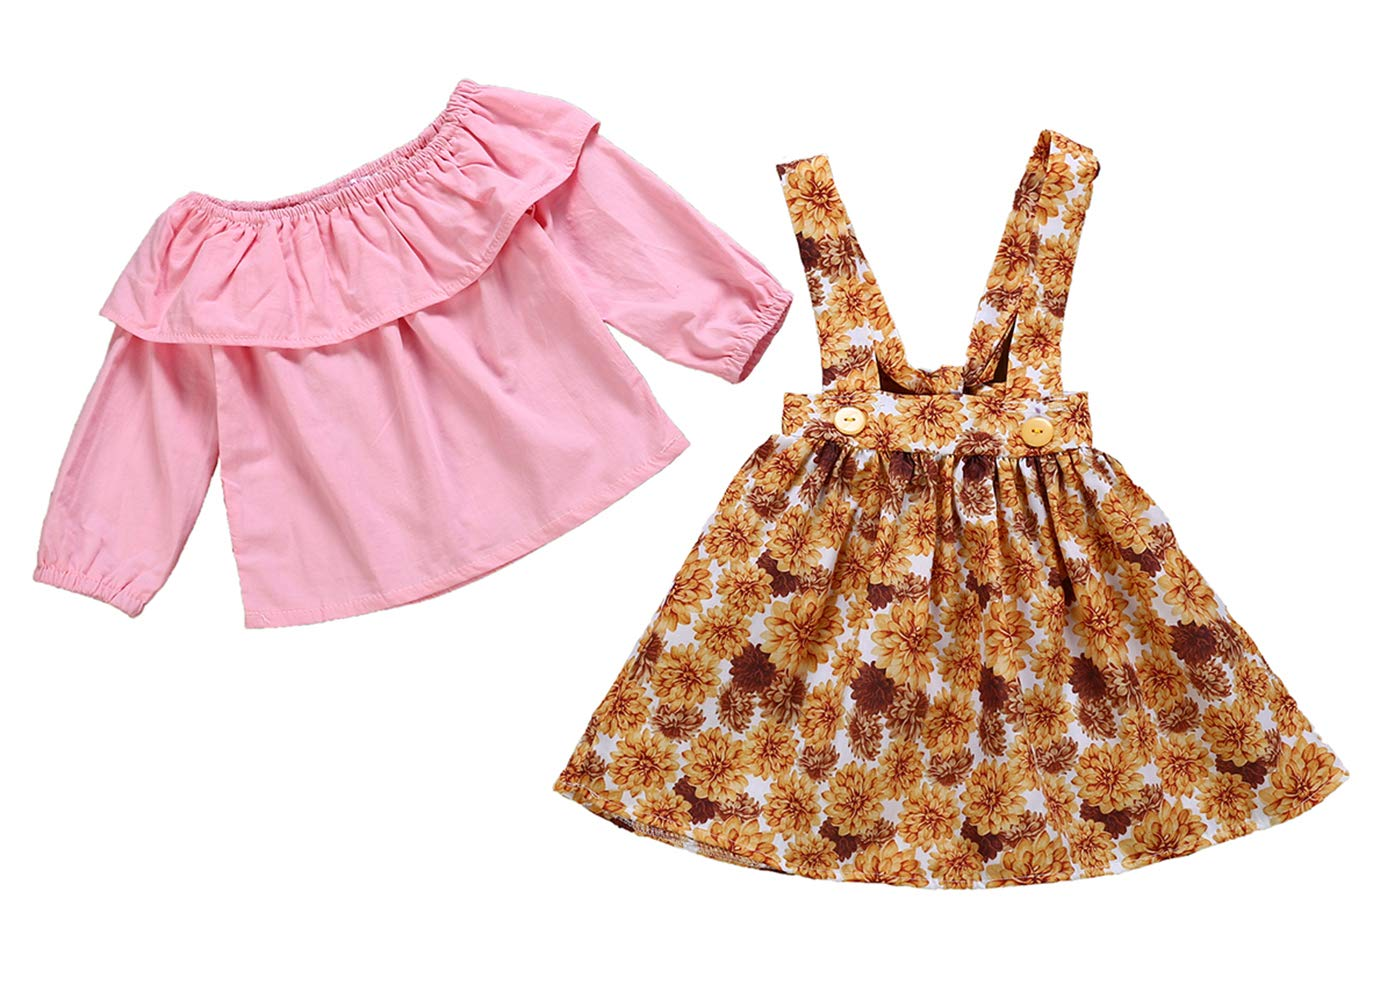 LOliSWan 2Pcs Infant Toddler Baby Girls Summer Boho Floral Rompers Jumpsuit Strap Skirt Overall Dress Outfits Set (Pink, 12-18 Months)